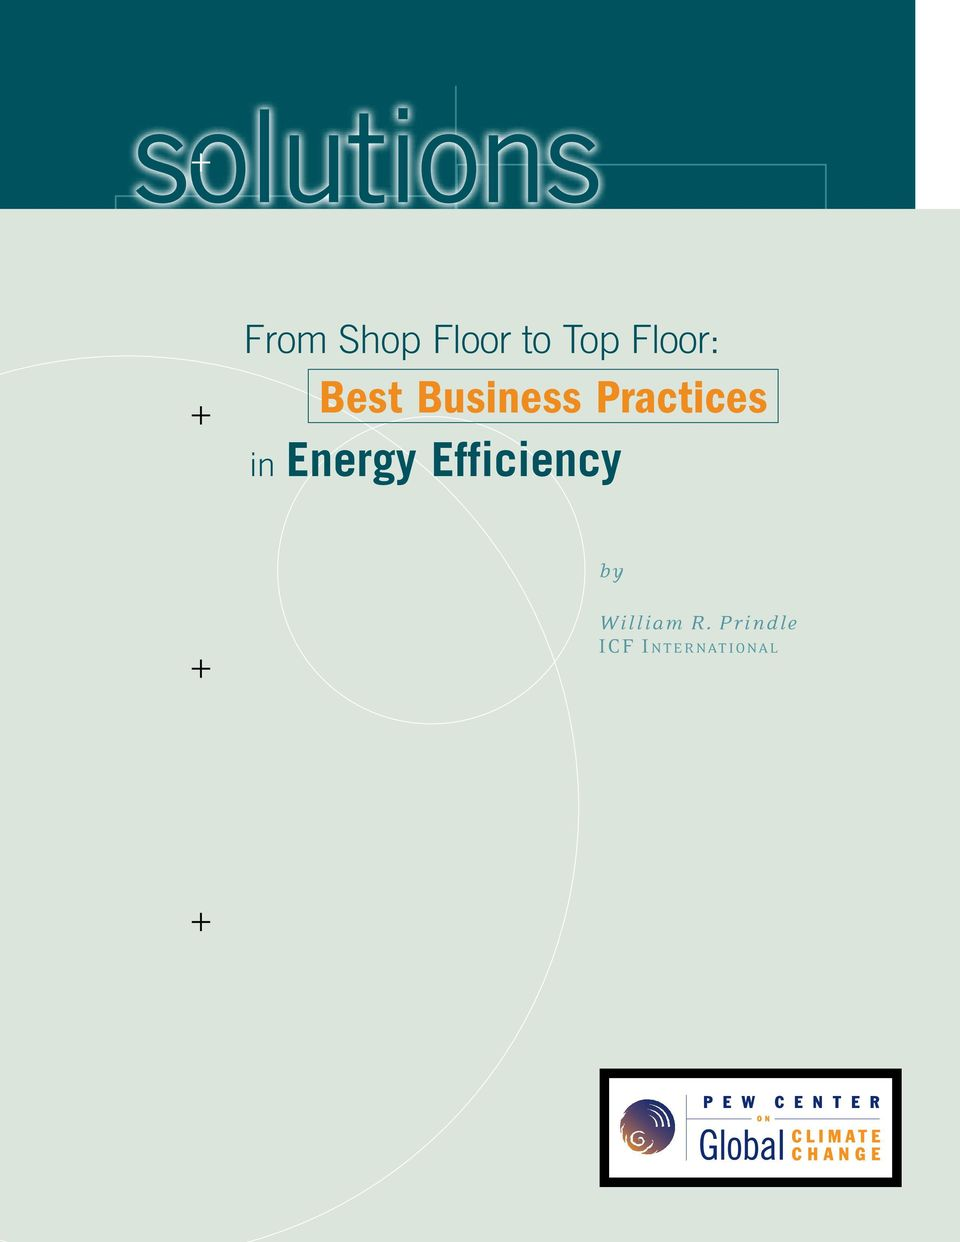 Practices in Energy Efficiency